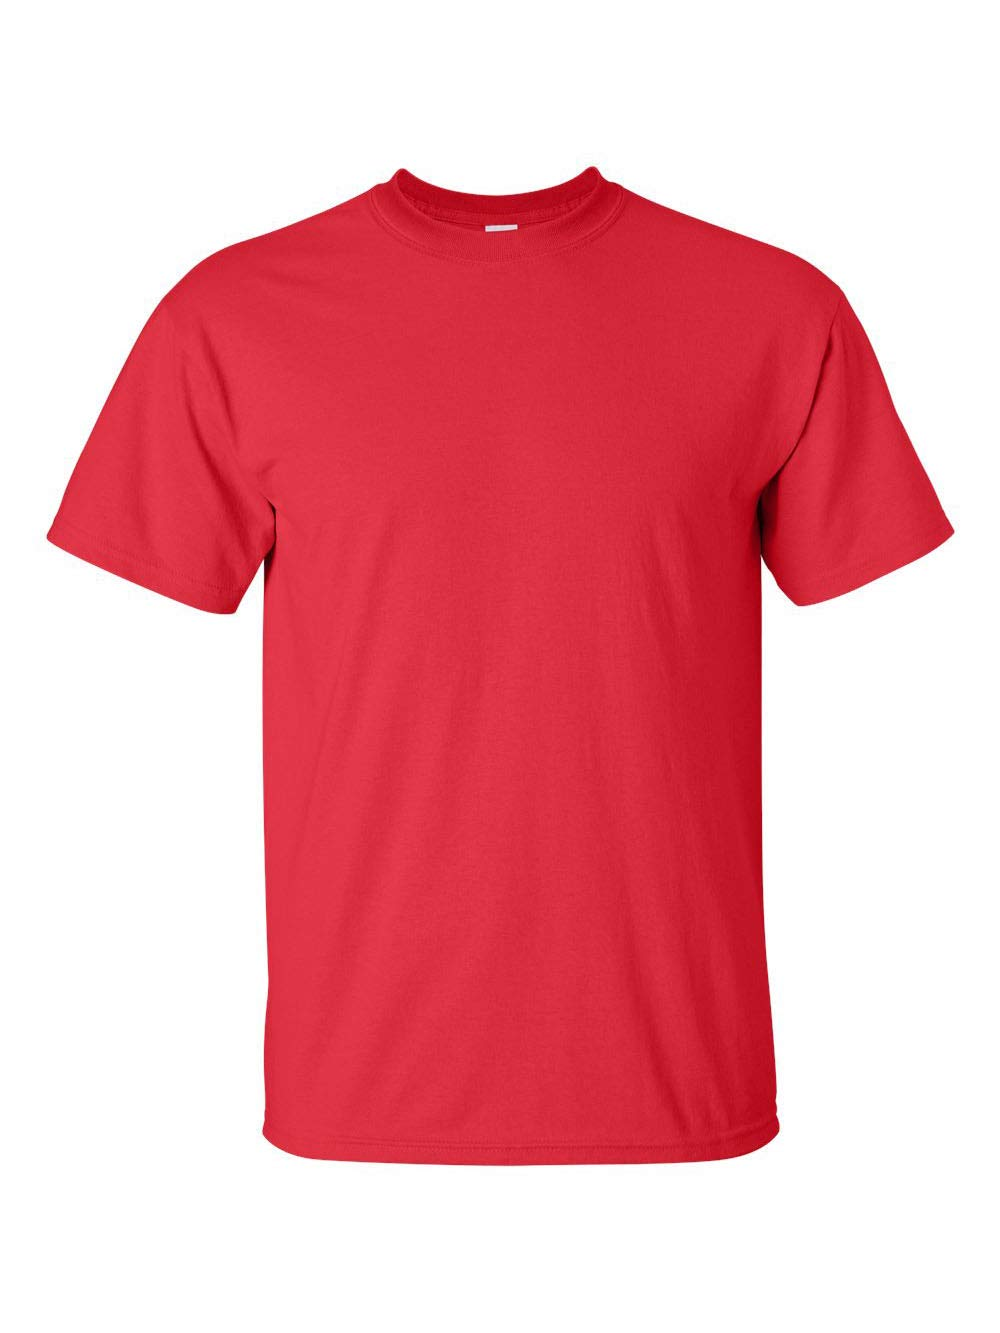 Gildan 6.1 oz. Ultra Cotton T-Shirt - PAPRIKA - 5XL